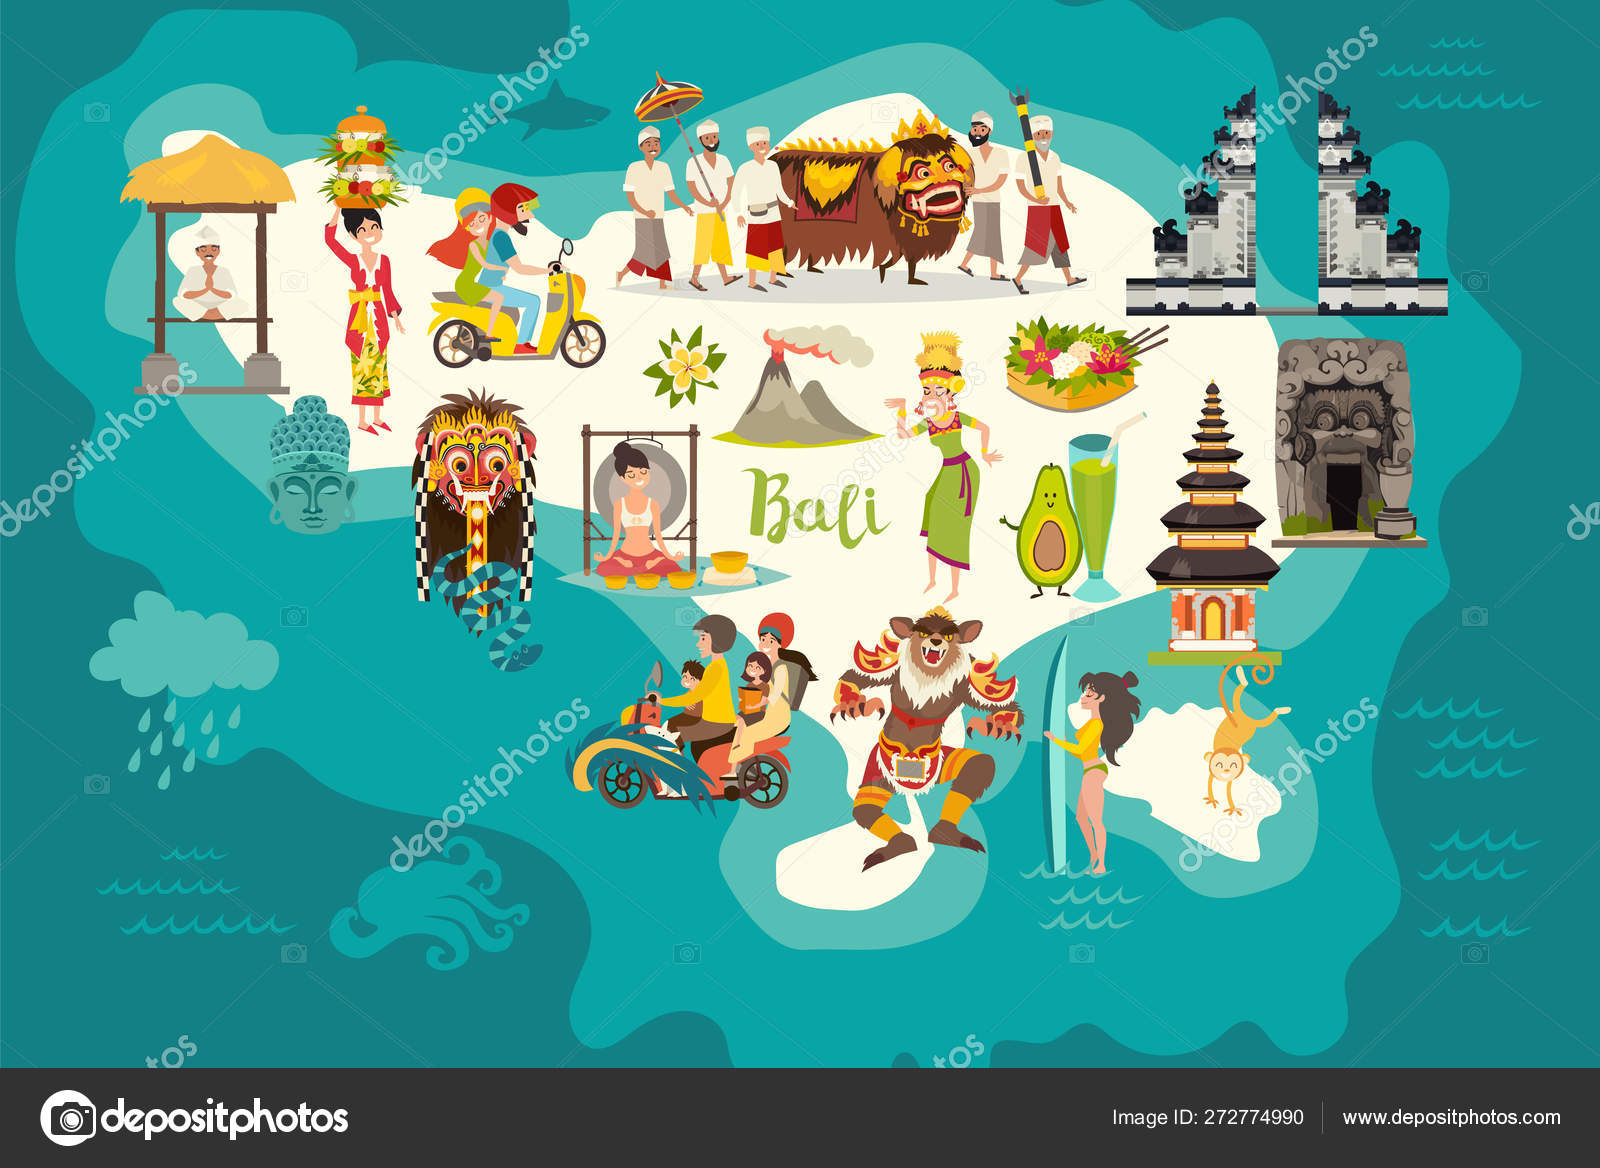 Áˆ Indonesian Demon Stock Vectors Royalty Free Ubud Illustrations Download On Depositphotos